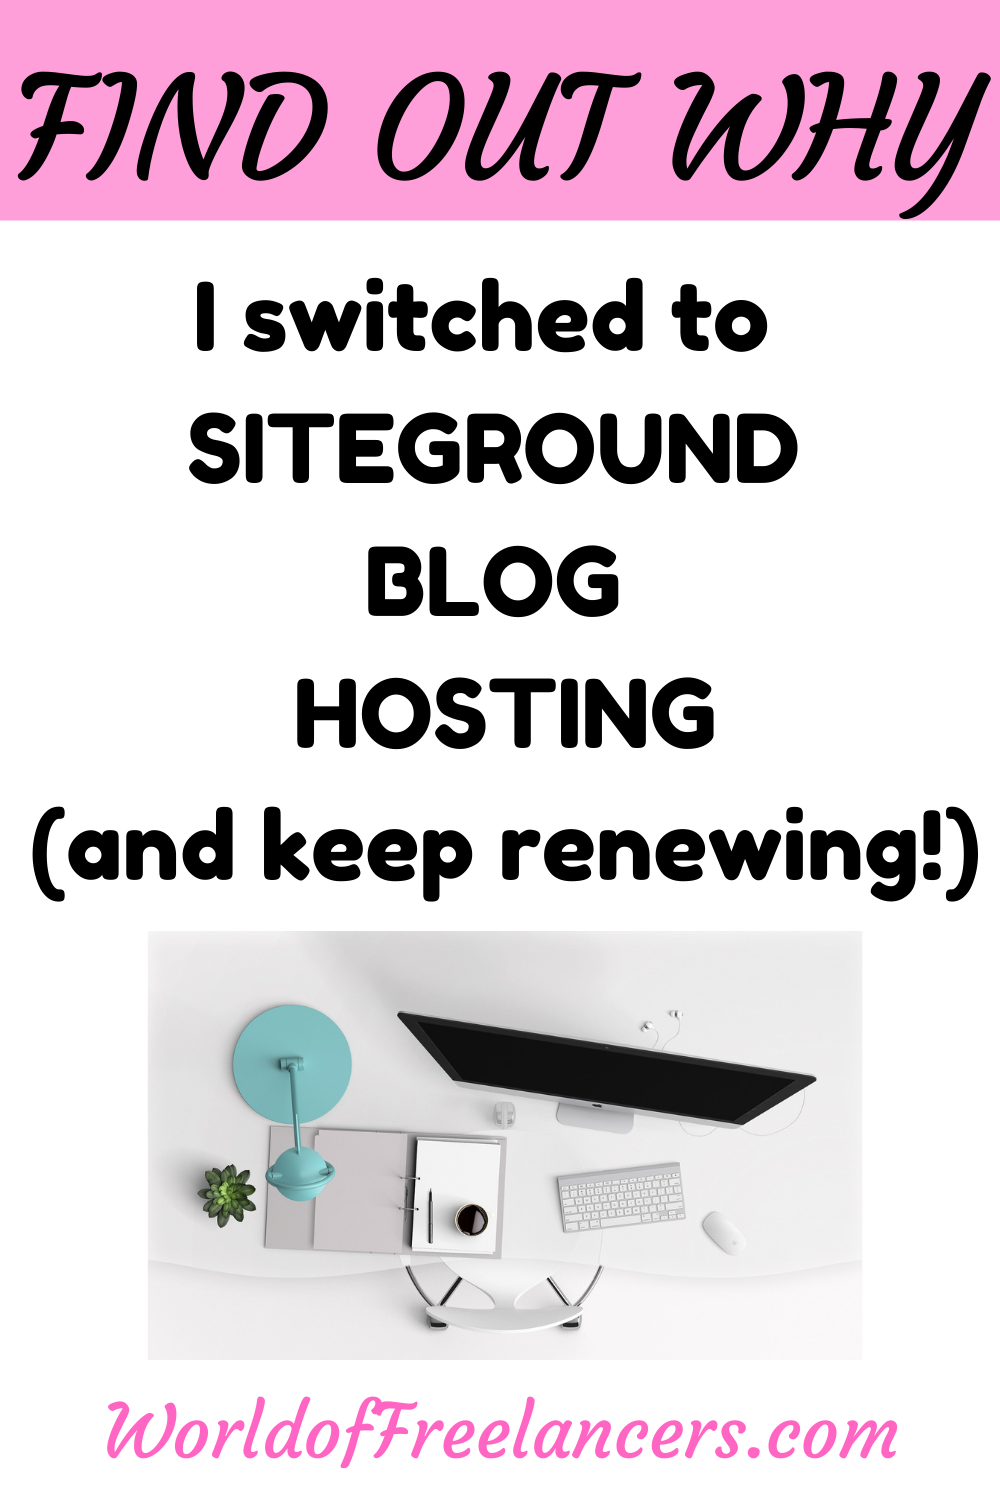 In this SiteGround review, find out why I switched to SiteGround Blog Hosting and Keep Renewing